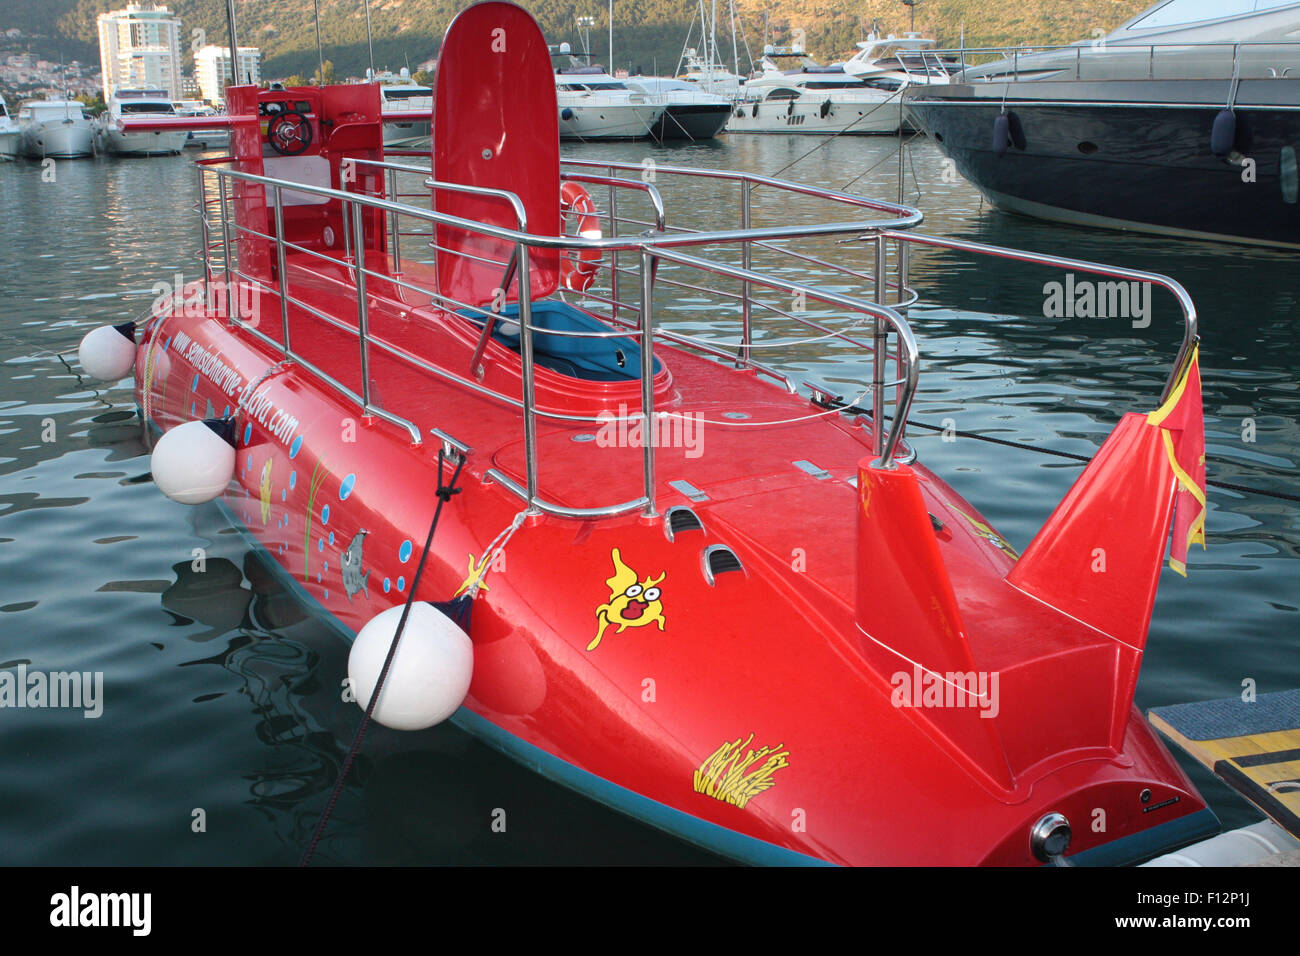 Small Submarine Stock Photos & Small Submarine Stock Images - Alamy